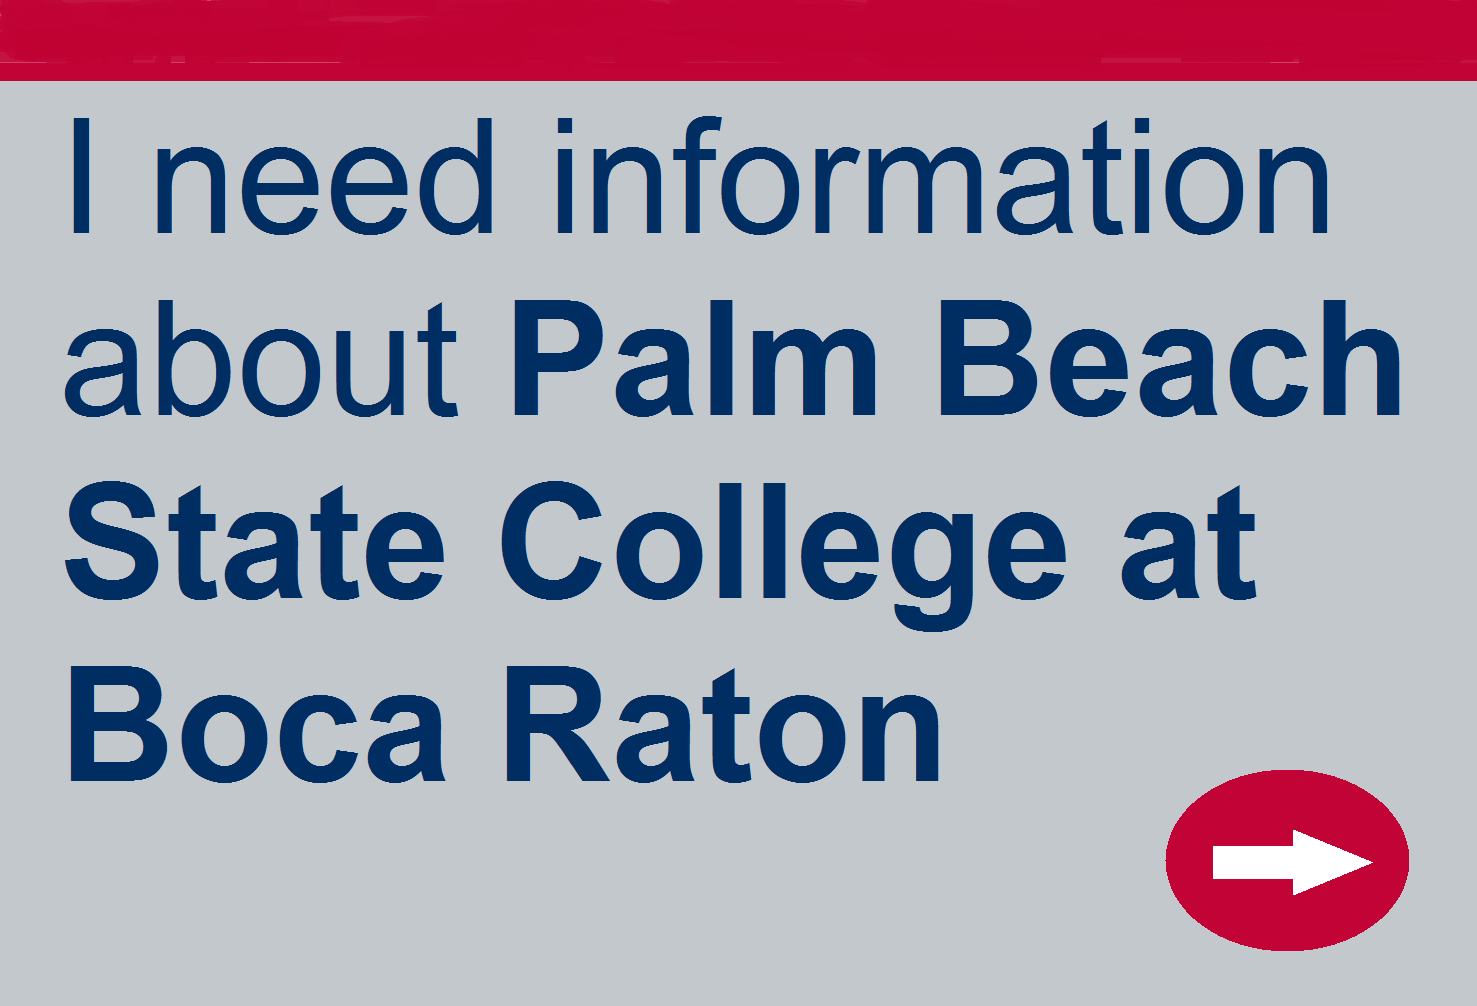 Need information about Palm Beach State College at Boca Raton